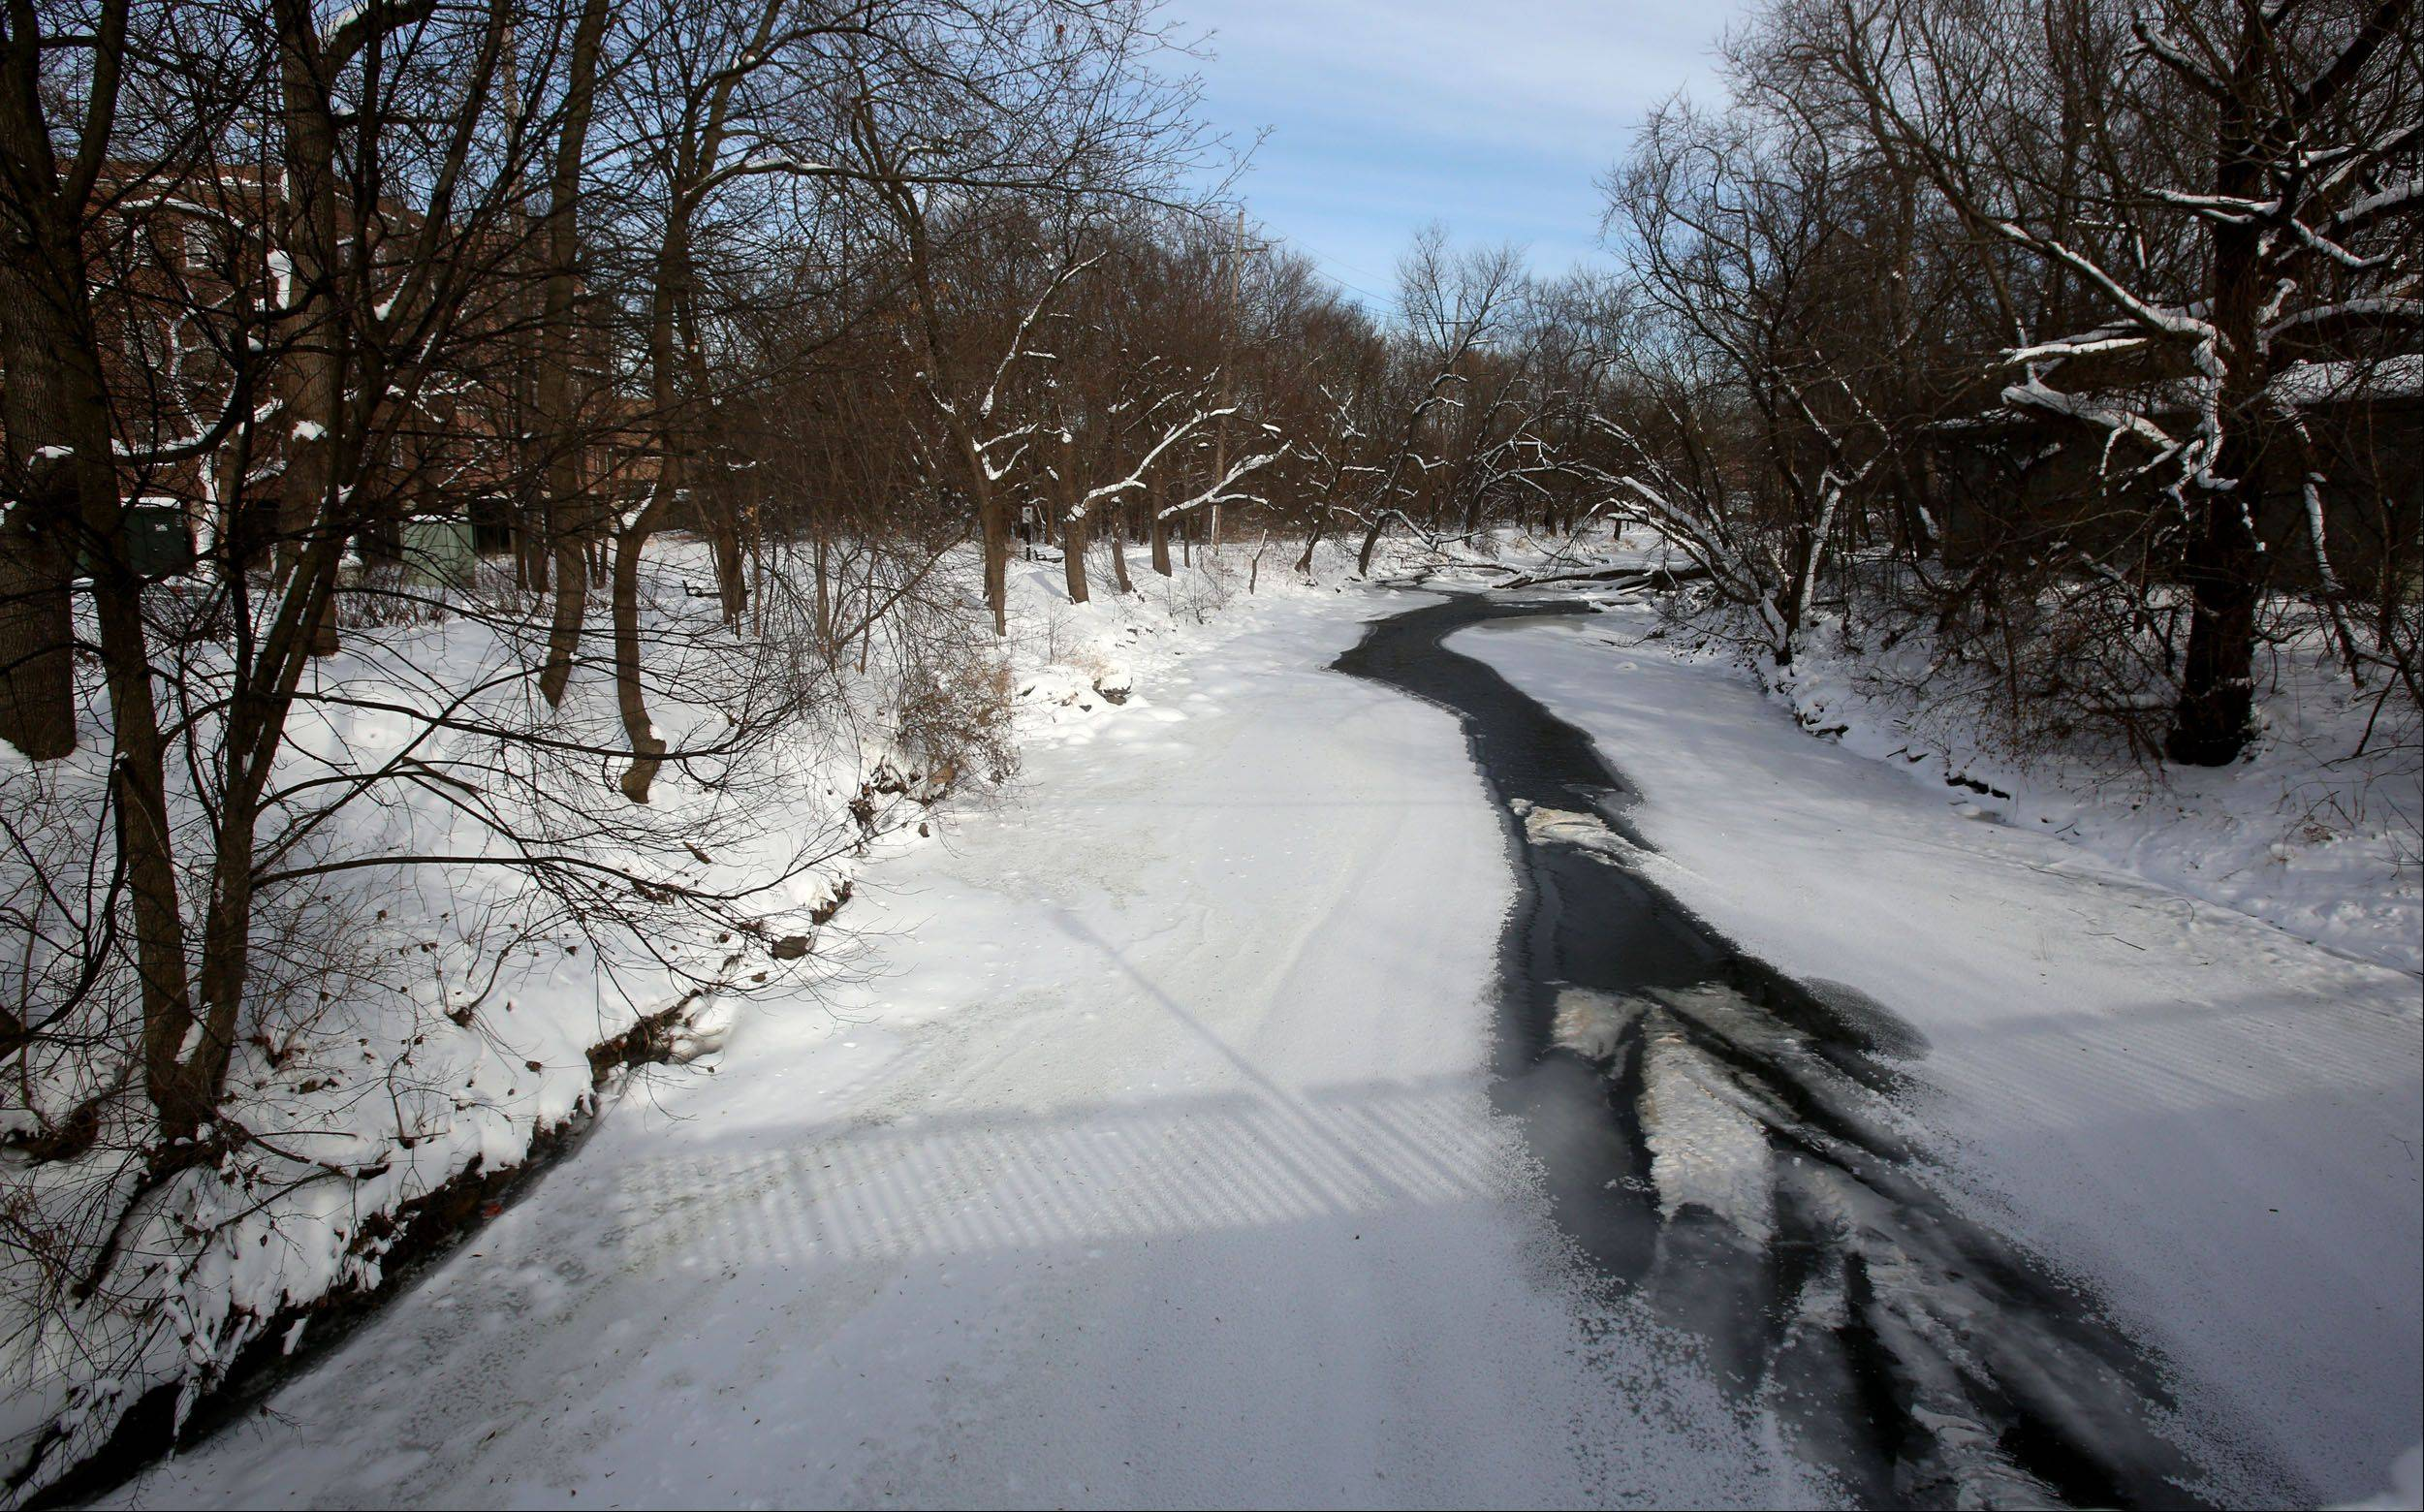 The 1.75-mile Naperville Riverwalk may be extended further south to Martin Avenue if the city council approves a boundary change later this month.